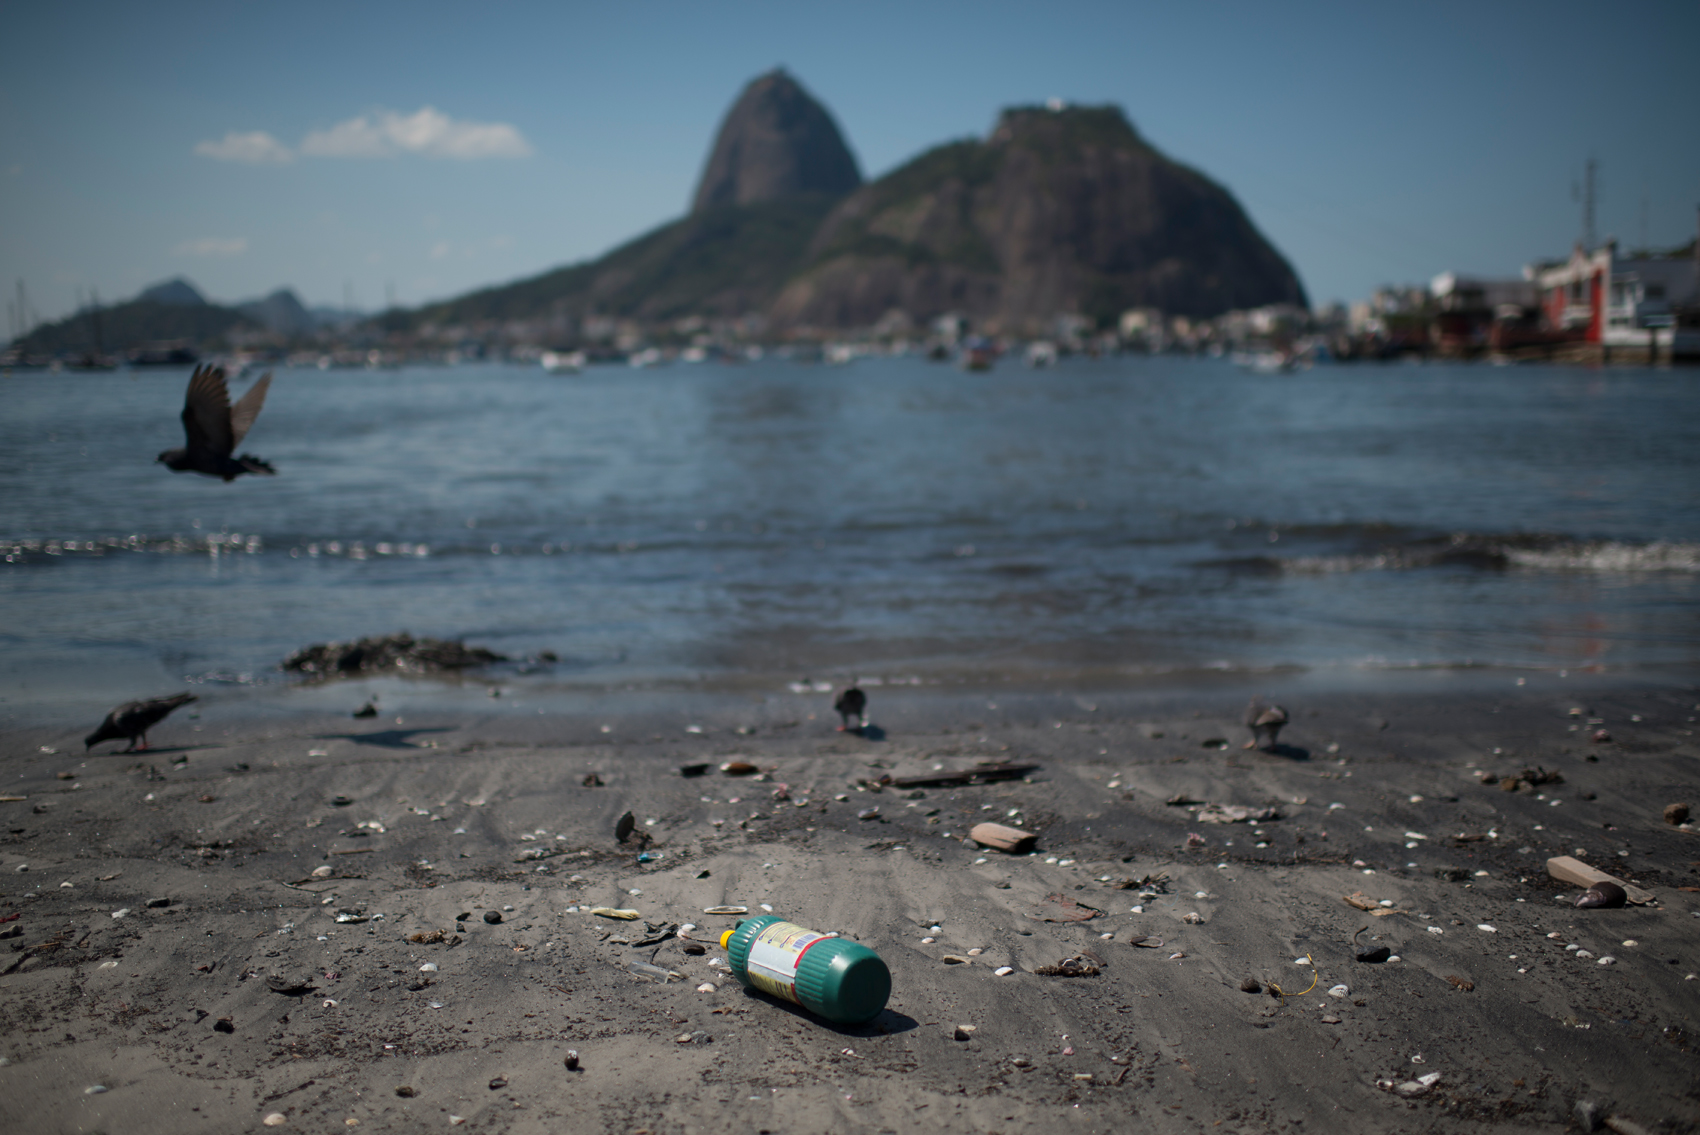 Guanabara Bay is one of the most important icons of Rio de Janeiro, Brazil. It was over these waters that European ships sailed on, some 515 years ago. The bay is home to many marine species, including the endangered Boto Cinza, but nowadays, pollution speaks louder than its beauty and historical importance. Because of that, beaches washed by its waters are not popular, but the animals that inhabit the area are the ones that suffer the most with this situation.